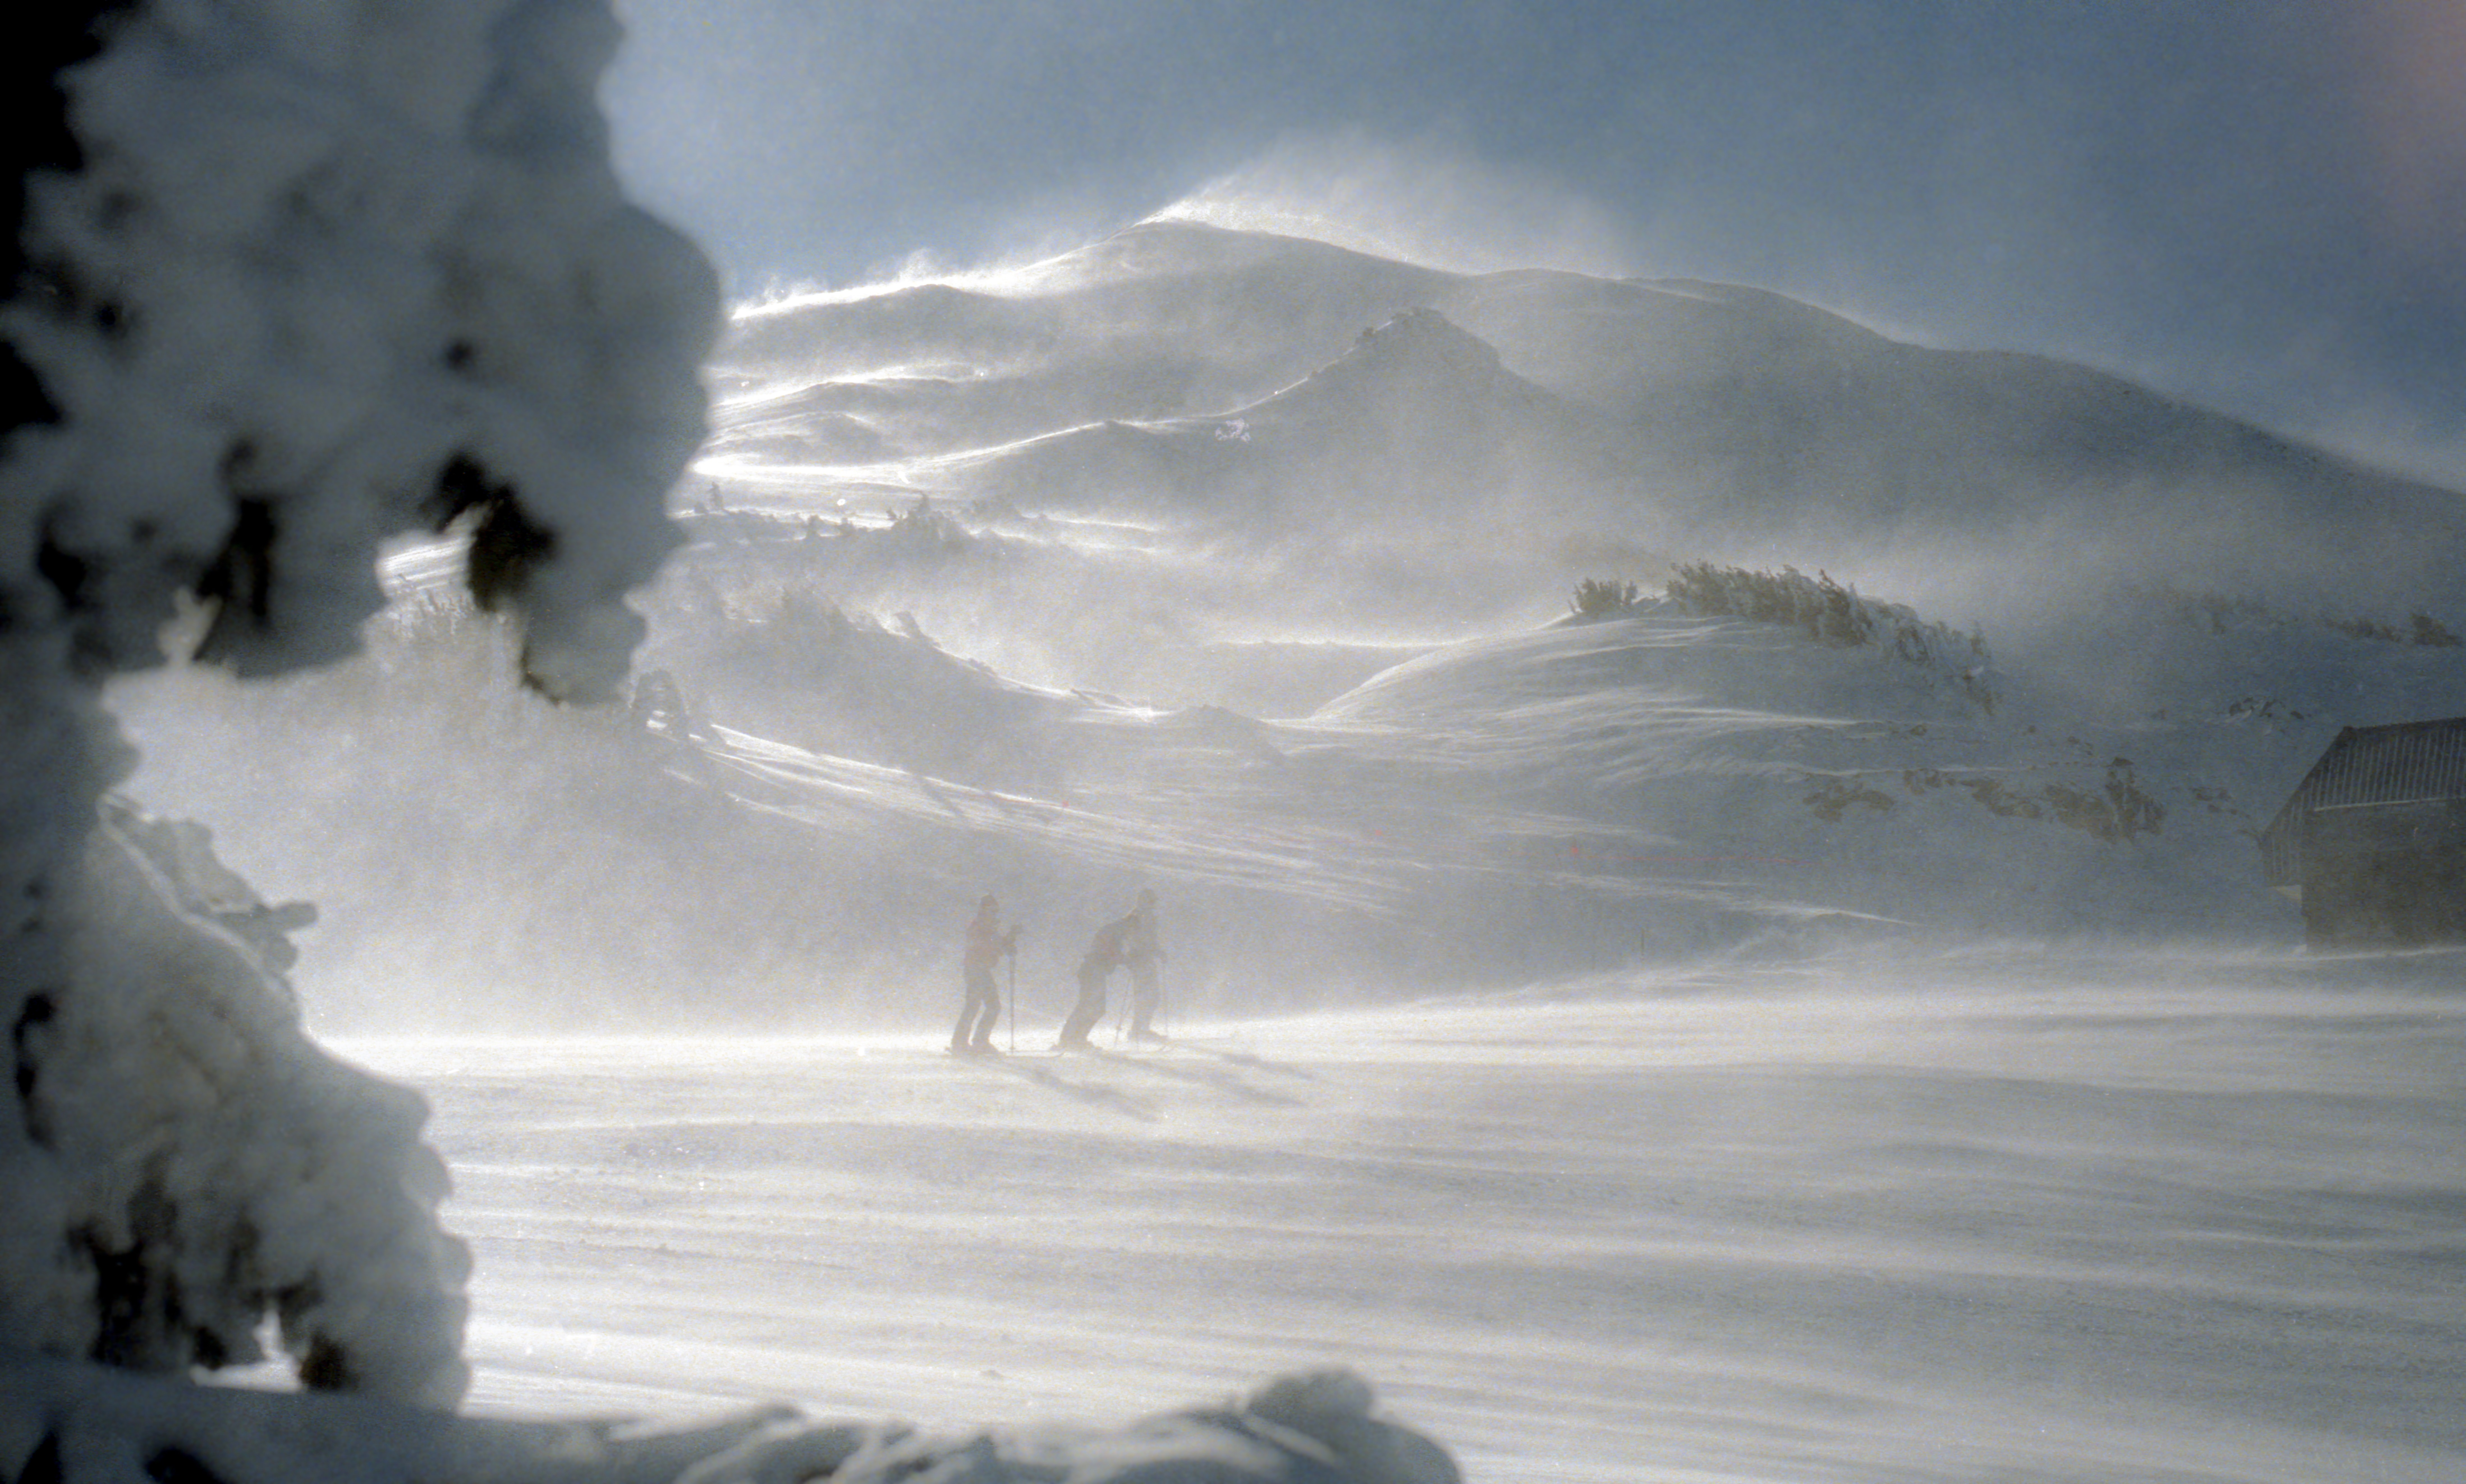 People hiking through windy snow at the bottom of Mount Bachelor in Oregon